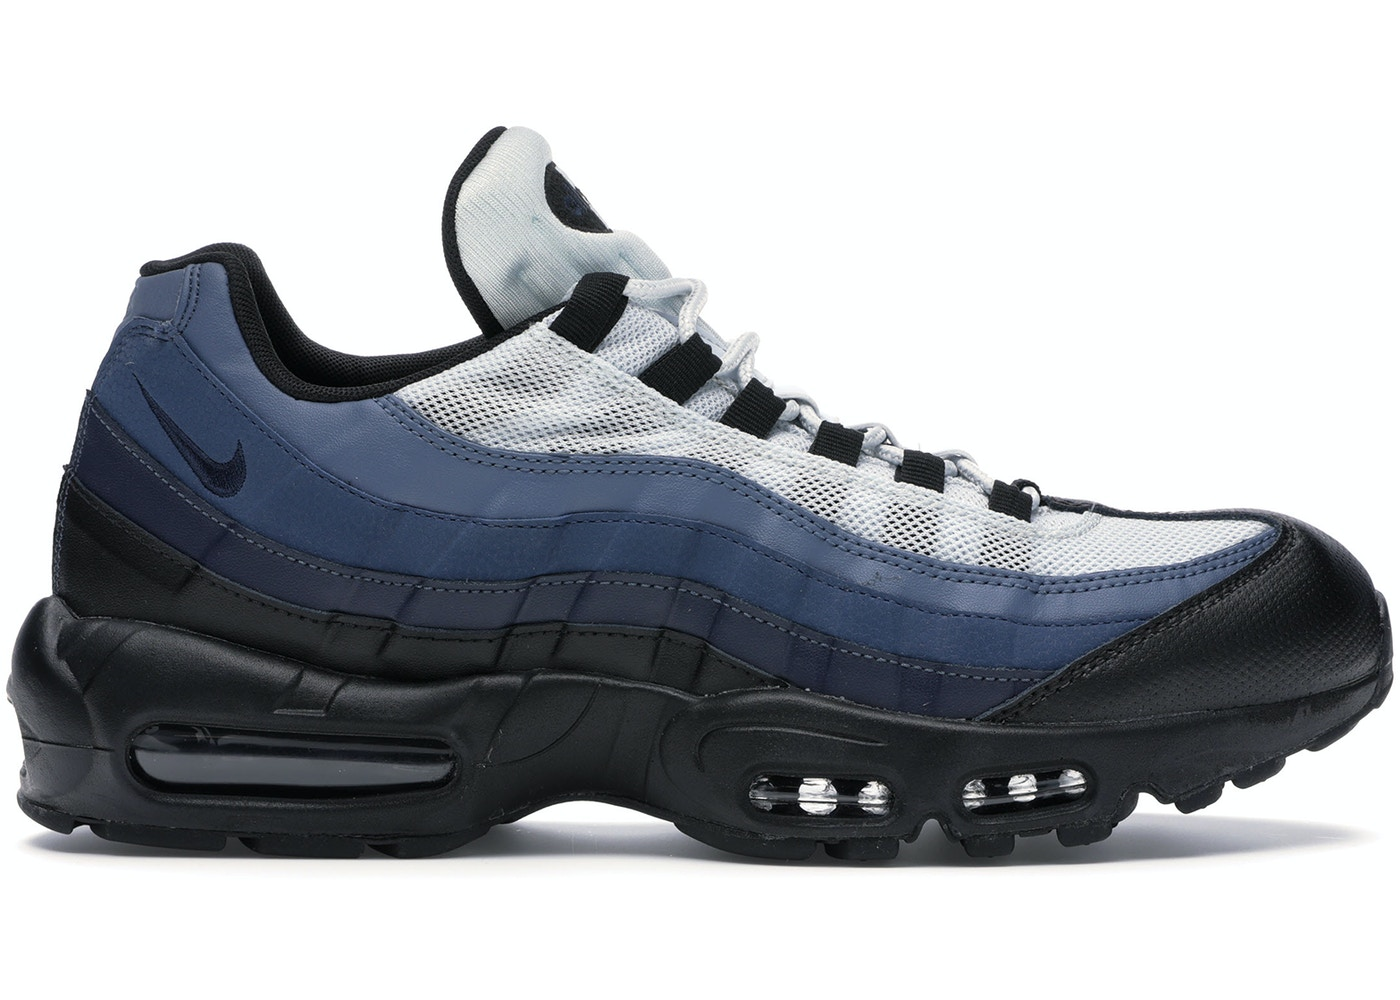 Nike Air Max 95 Black Navy Obsidian 749766 028